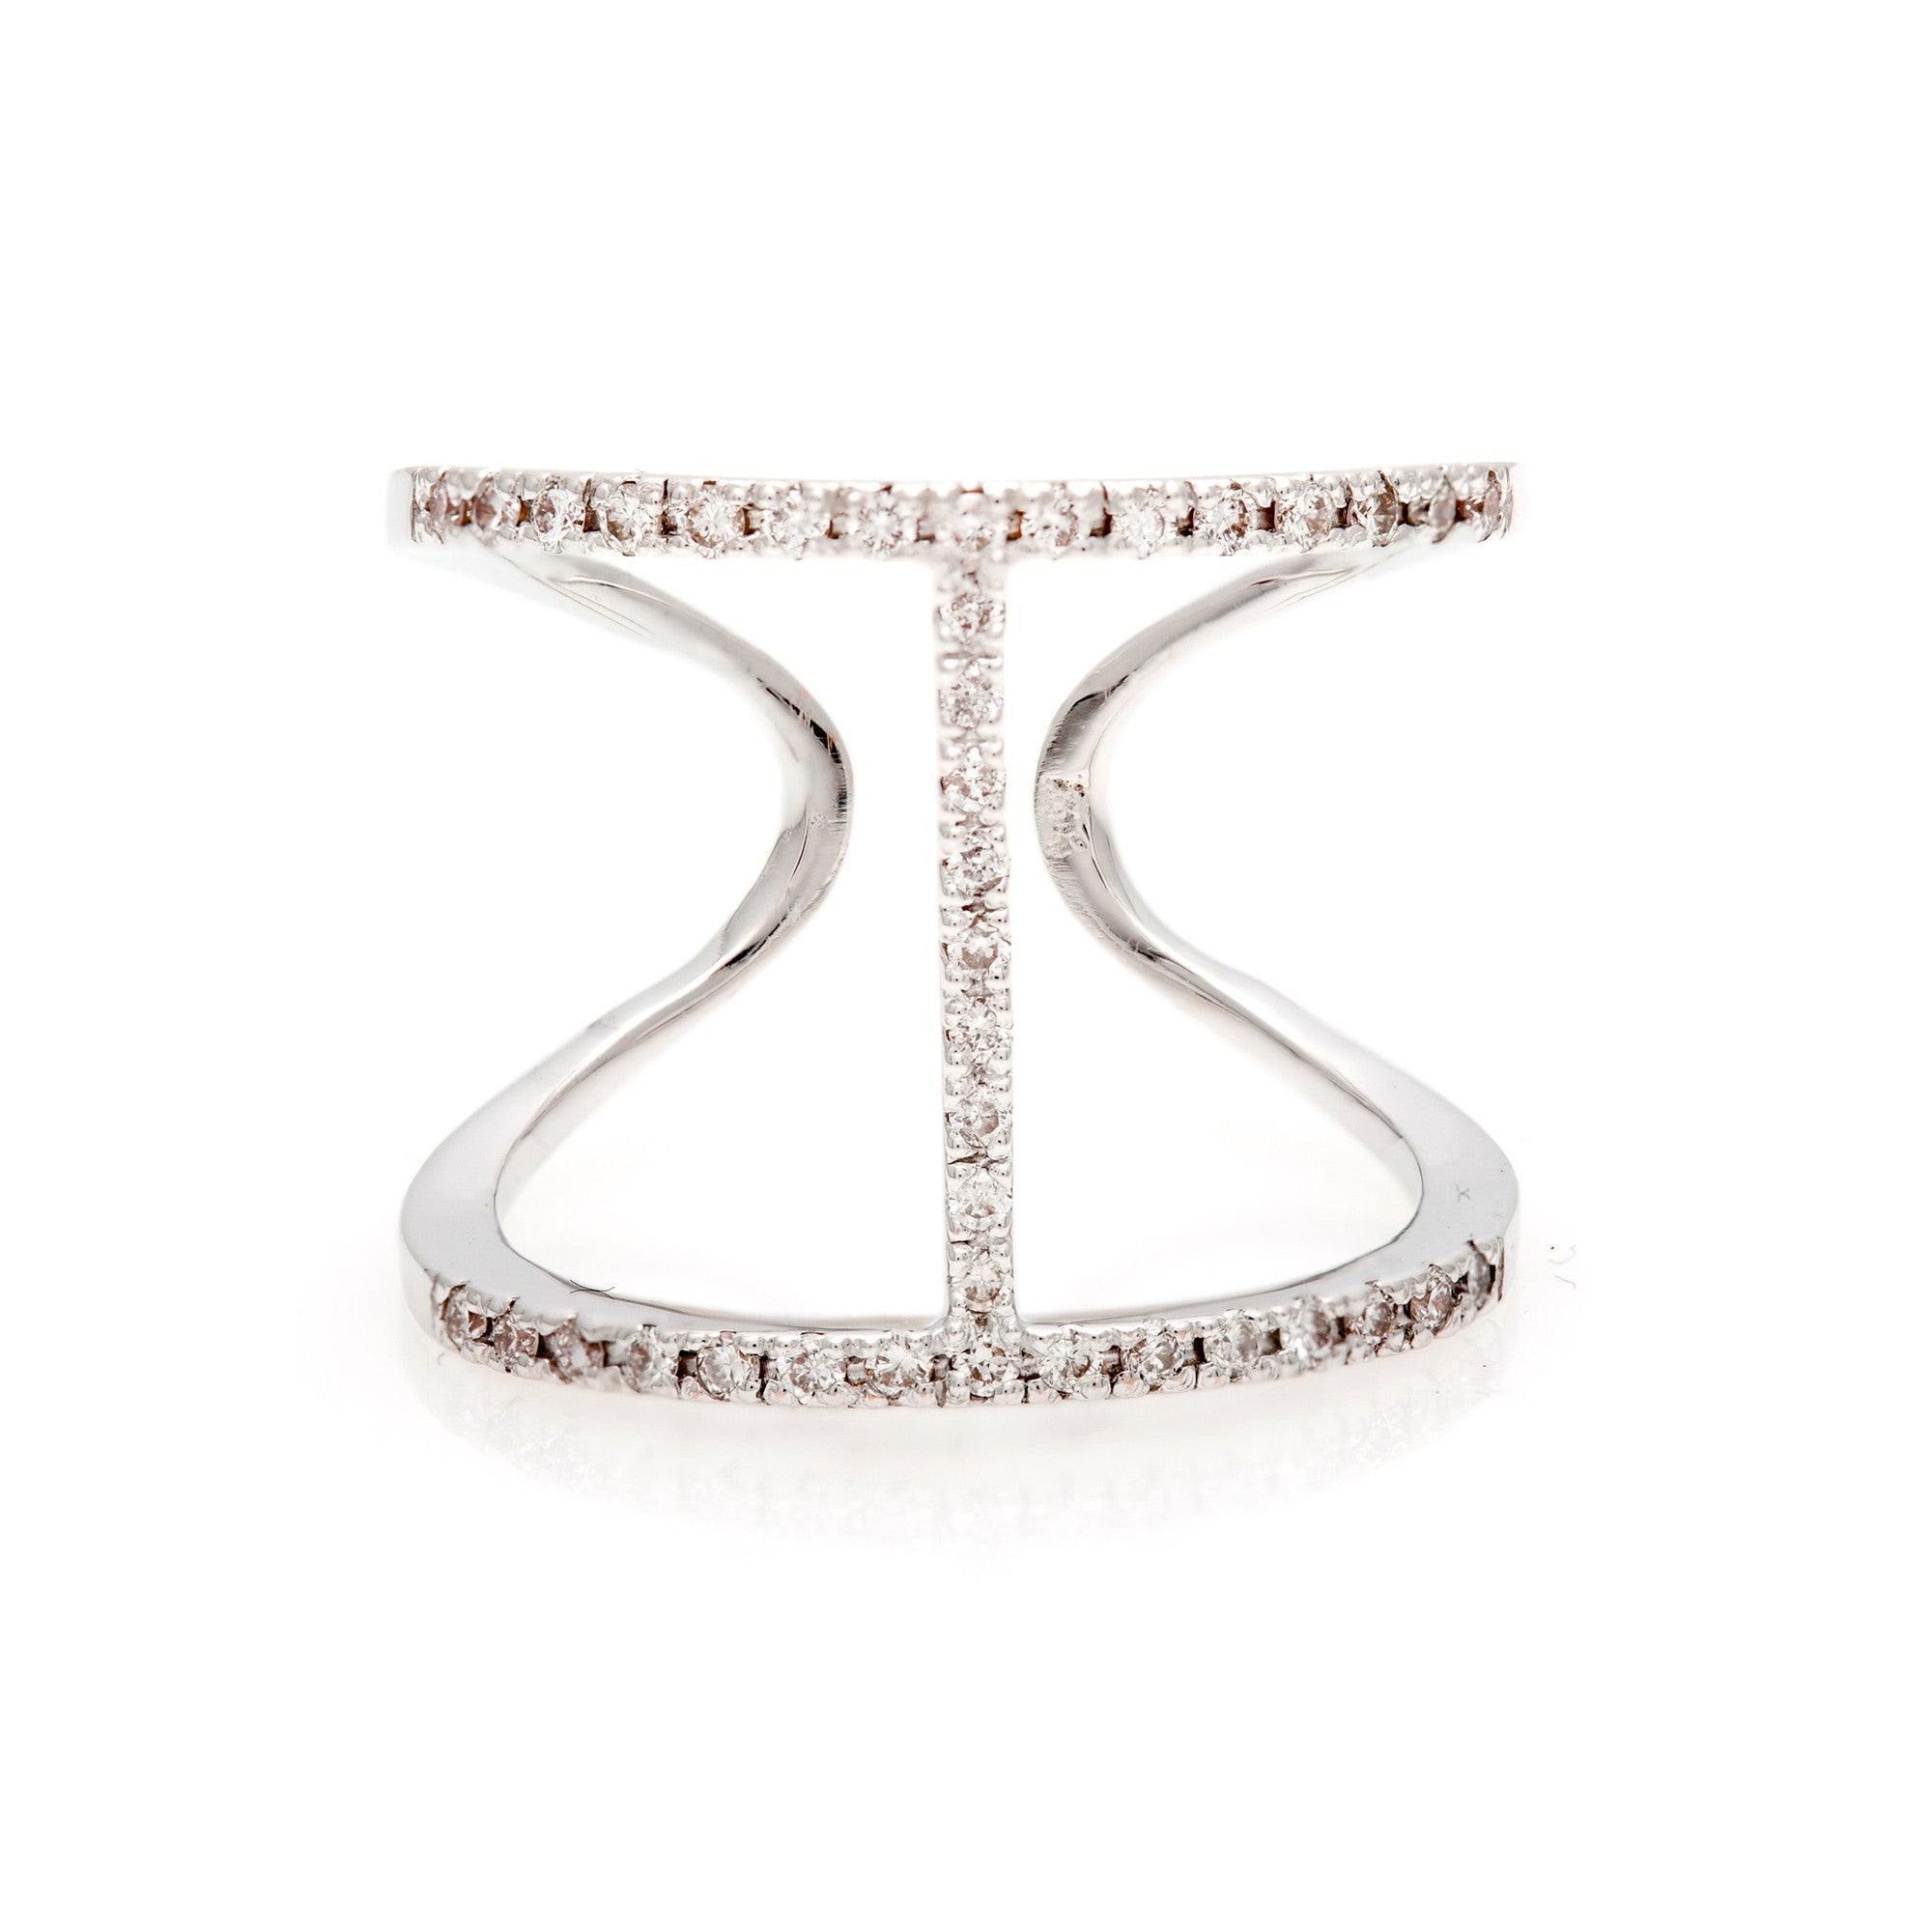 Pavé 'H' Diamond Ring- 50% OFF!